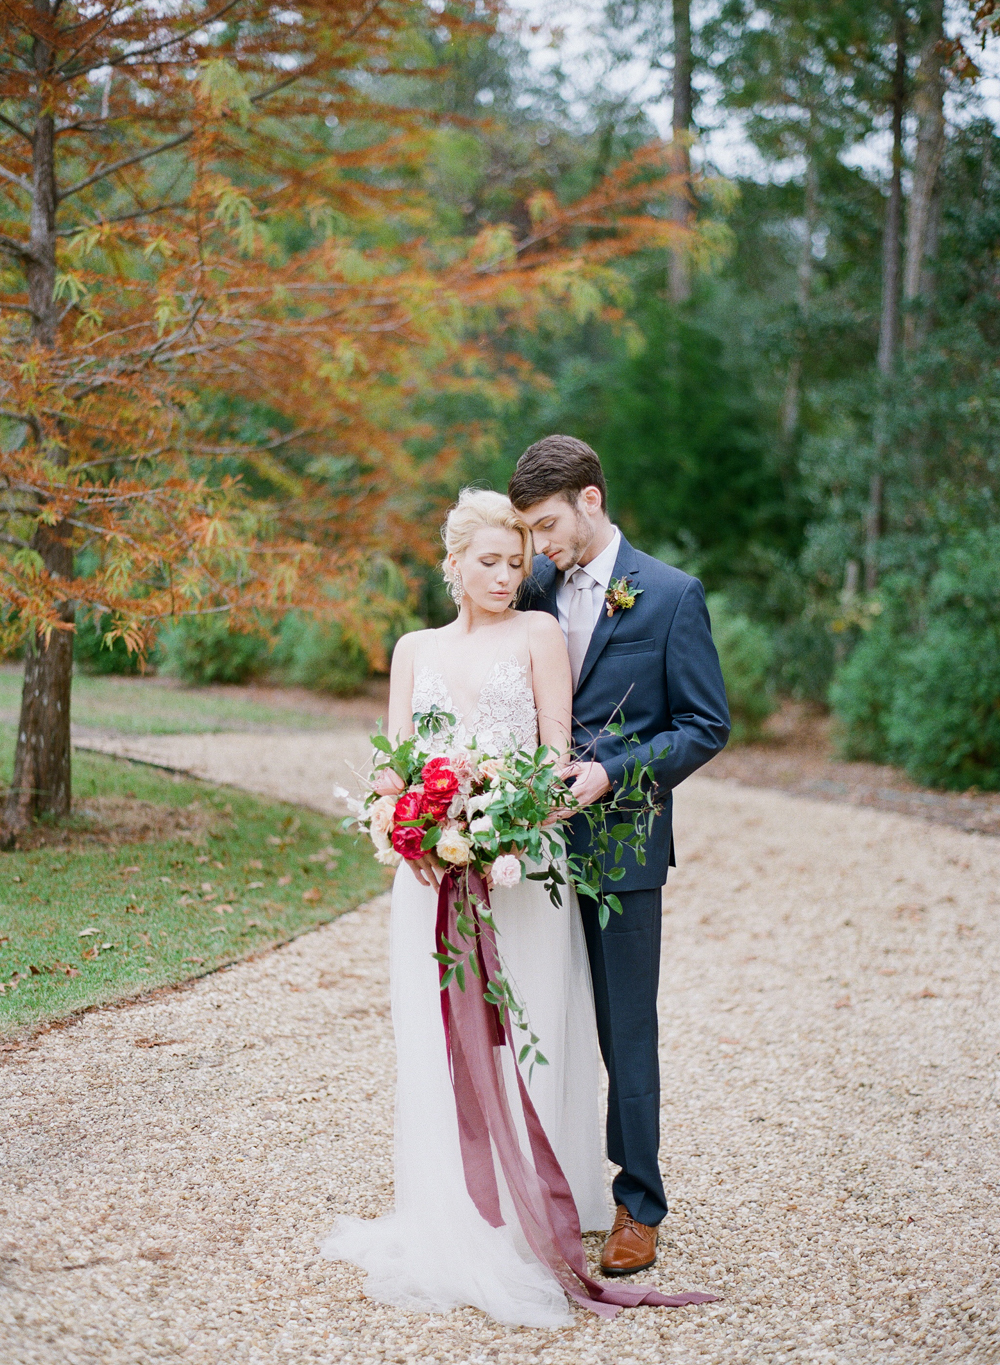 Janine_Licare_Photography_Charleston_Wedding_Romantic_Bella_Belle_Shoes_East_Made_Event_Company_BHLDN_Destination-11.jpg